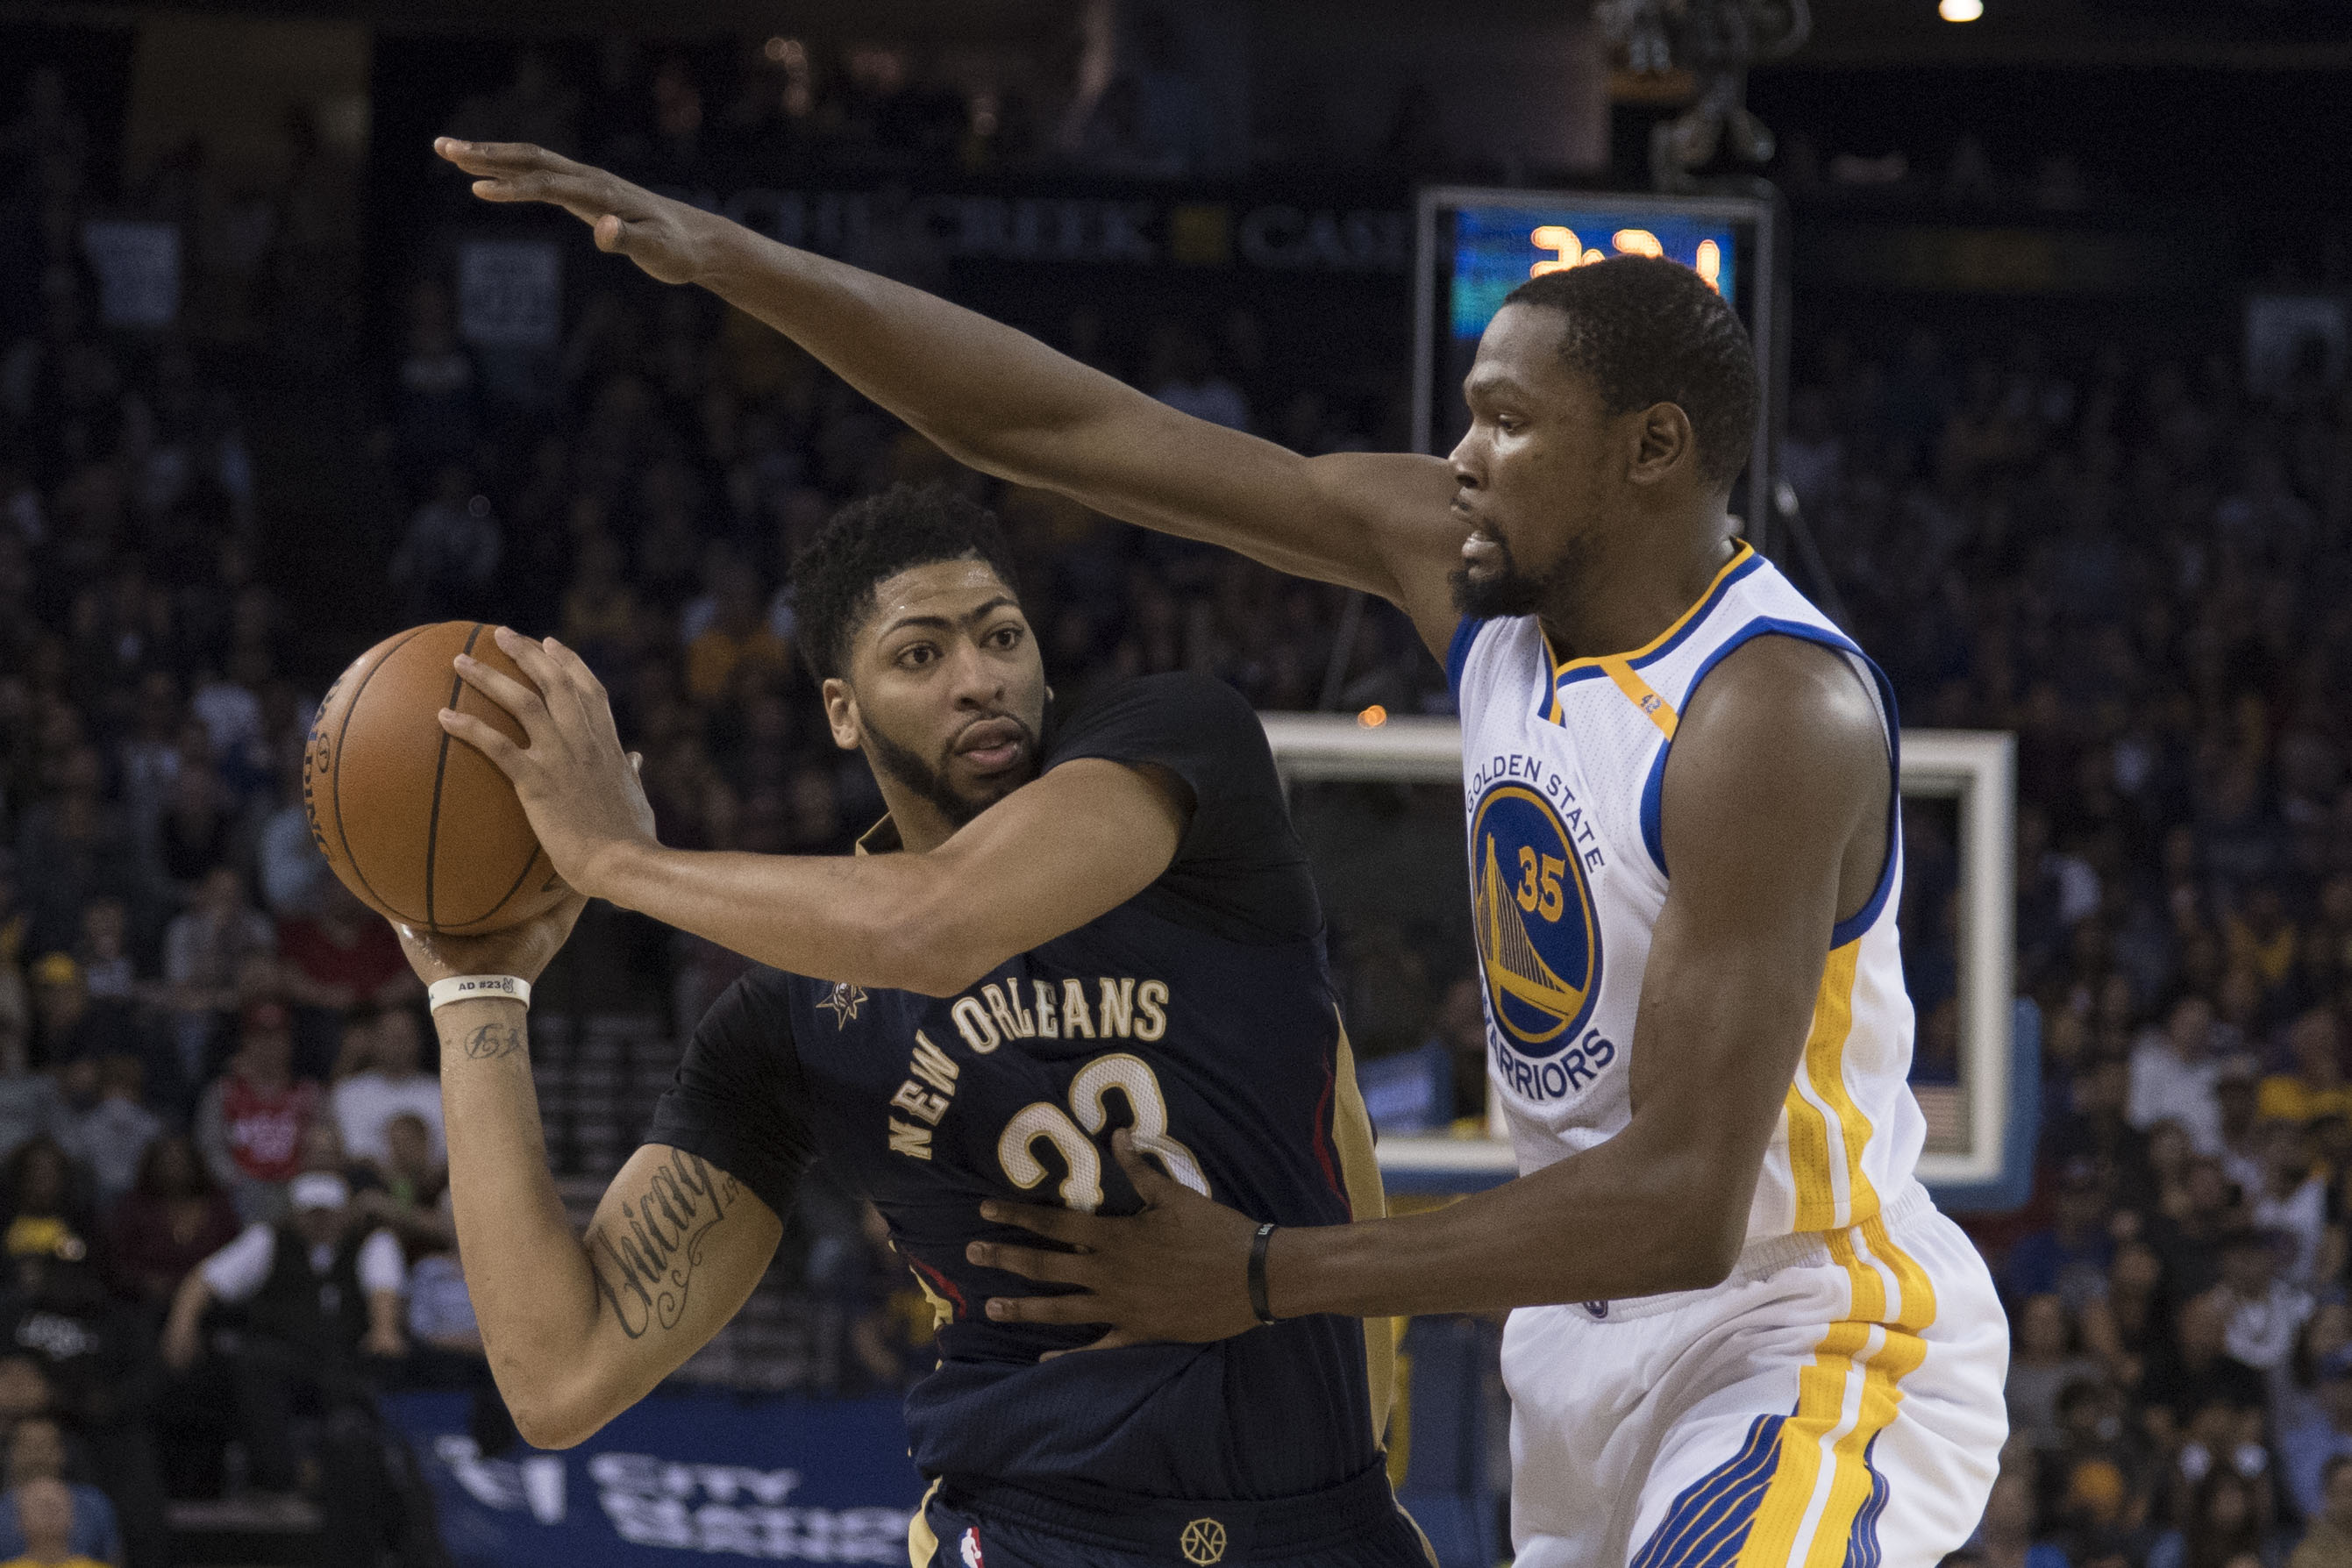 9661634-nba-new-orleans-pelicans-at-golden-state-warriors